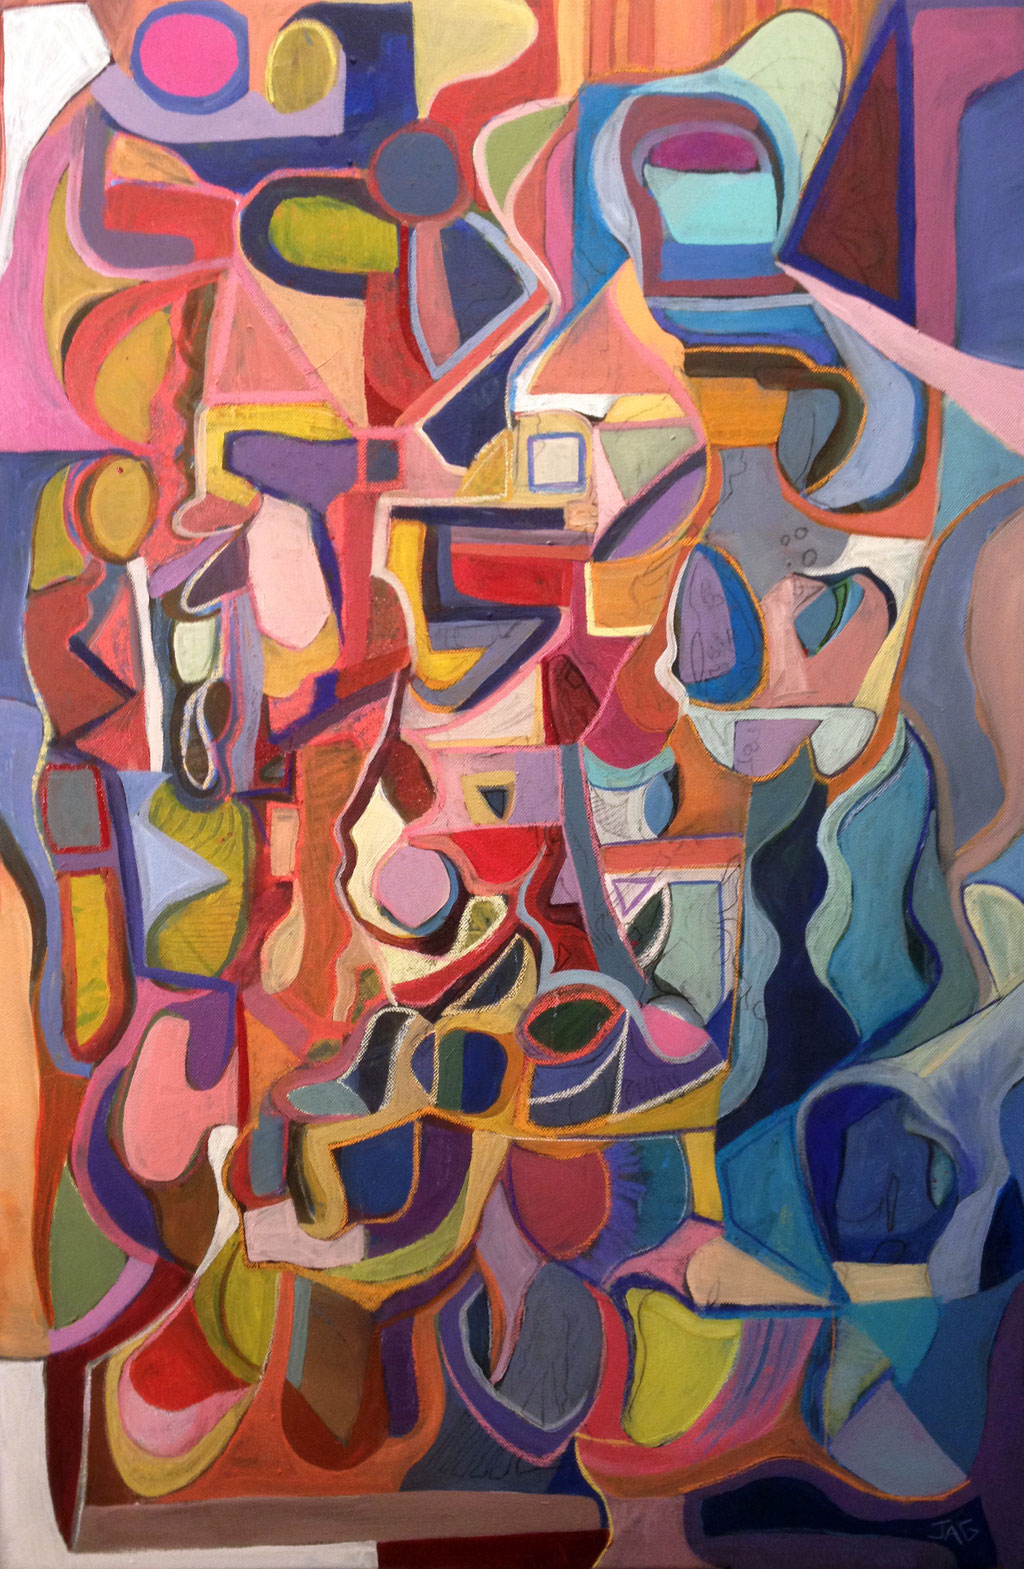 'Love Potion' acrylic, chalk and emulsion on canvas, 2010 - SOLD